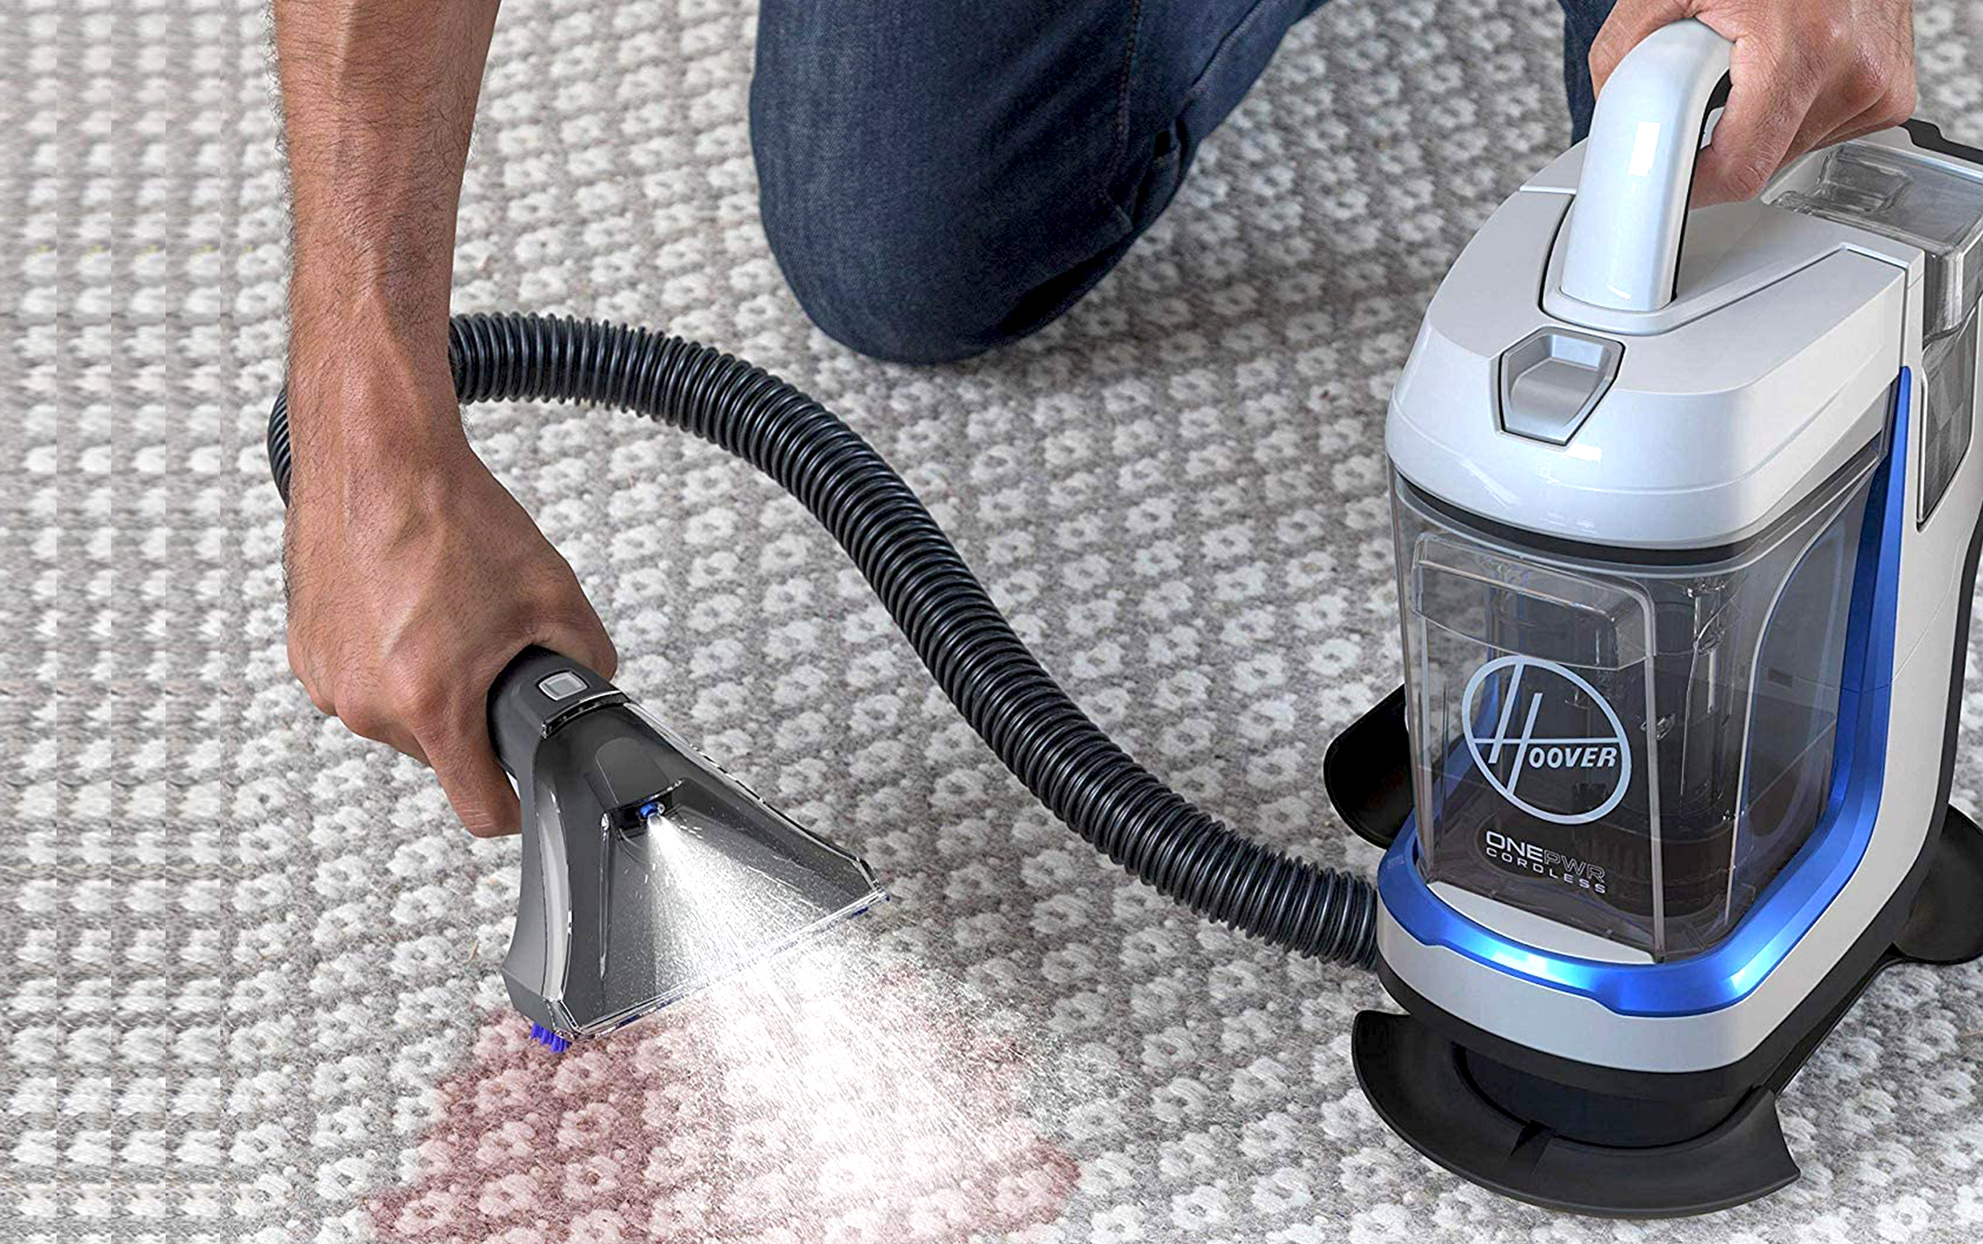 The 9 Best Carpet Cleaners For Pets According To Reviews Better Homes Gardens